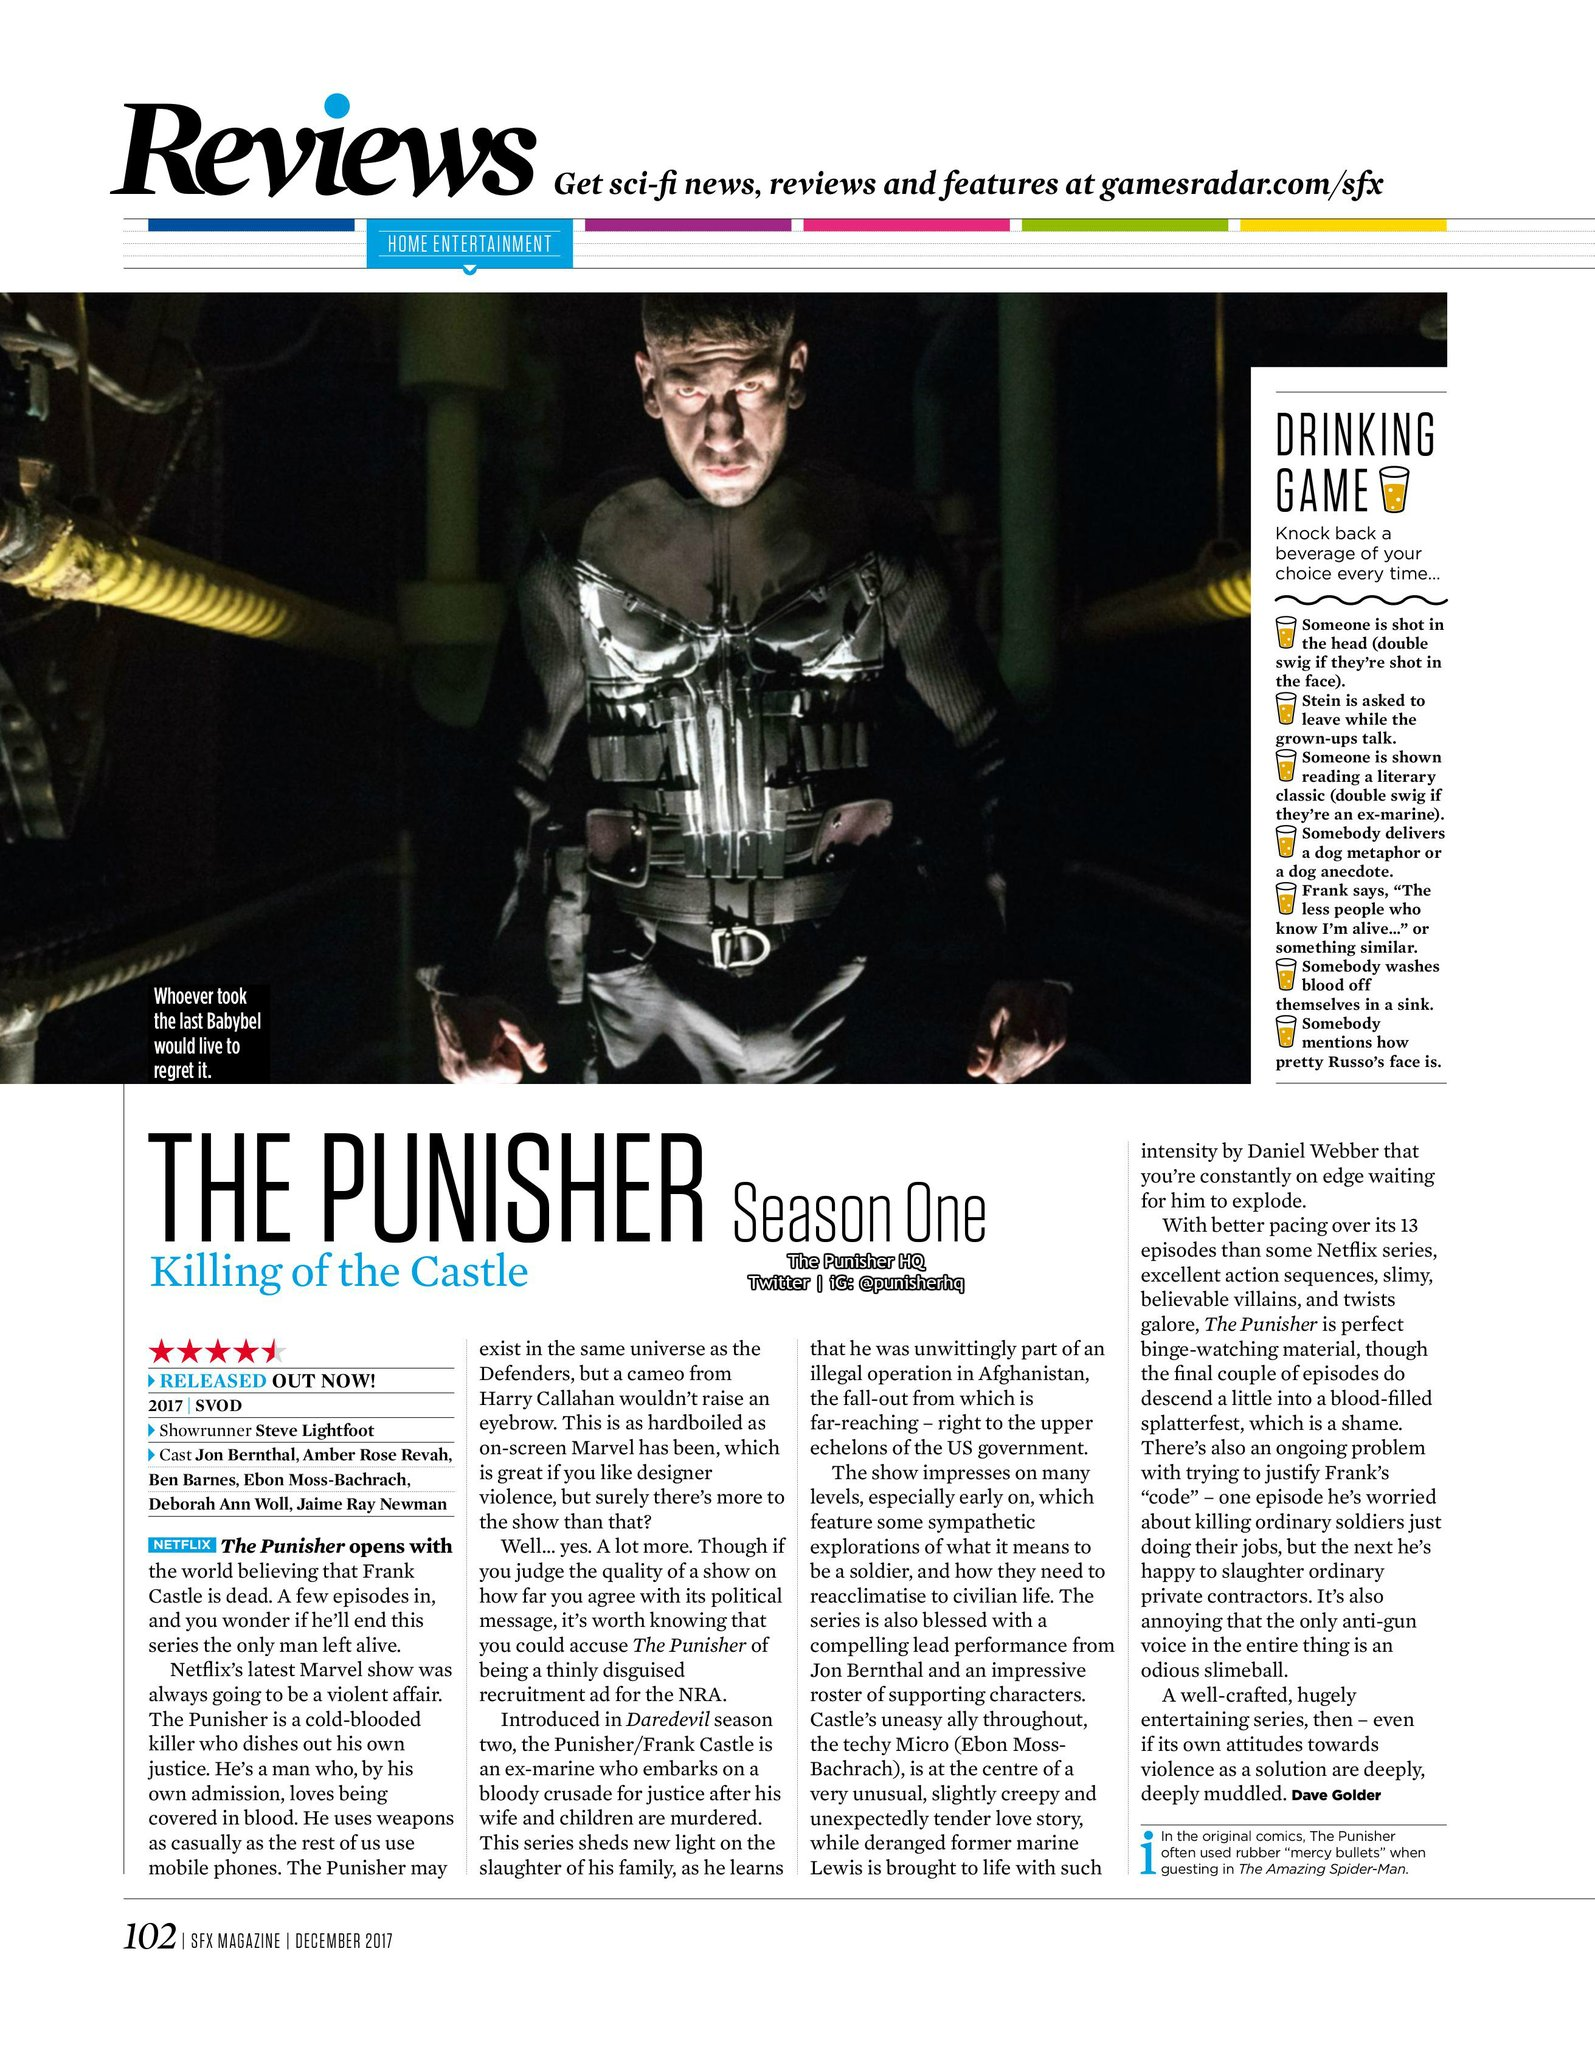 High quality version of The Punisher article.